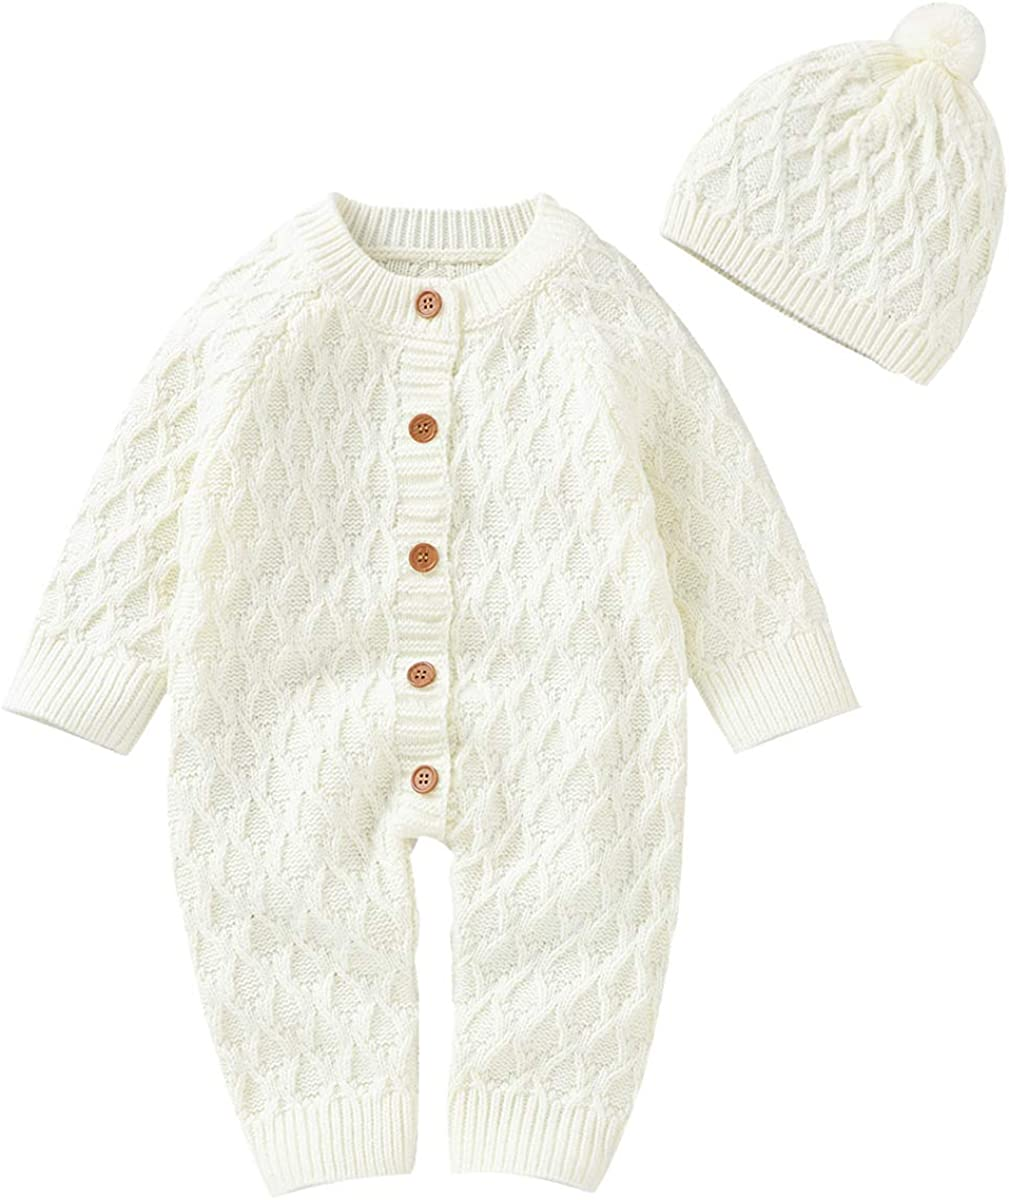 Petyoung Newborn Ranking TOP12 Baby online shopping Knitted Jumpsuit Romper Sweater Longsleeve